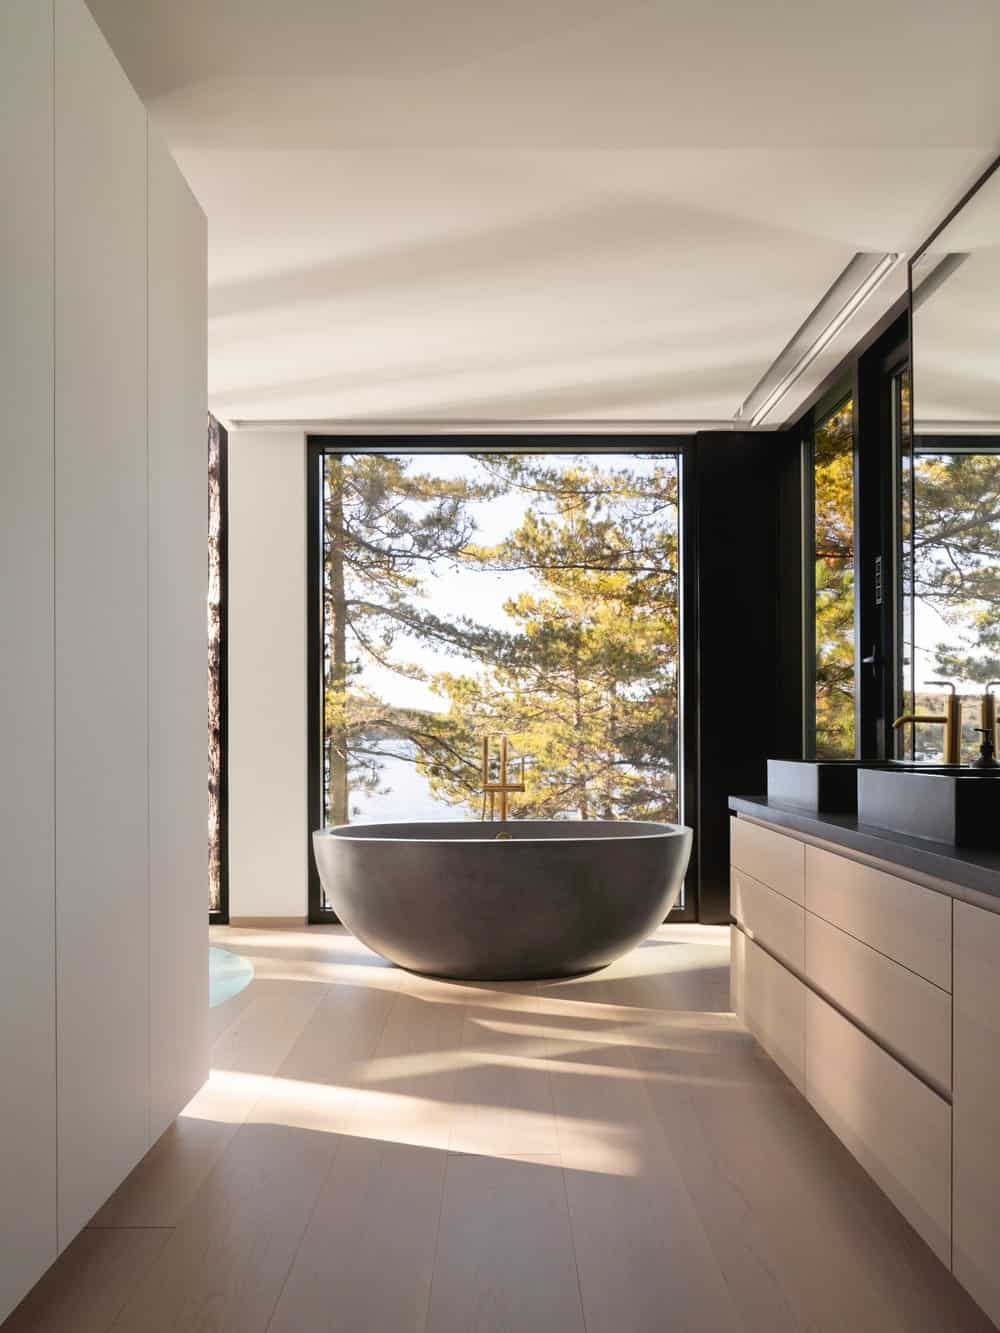 The bathroom has a large freestanding bathtub standing by the glass walls at the far end of the modern vanity.